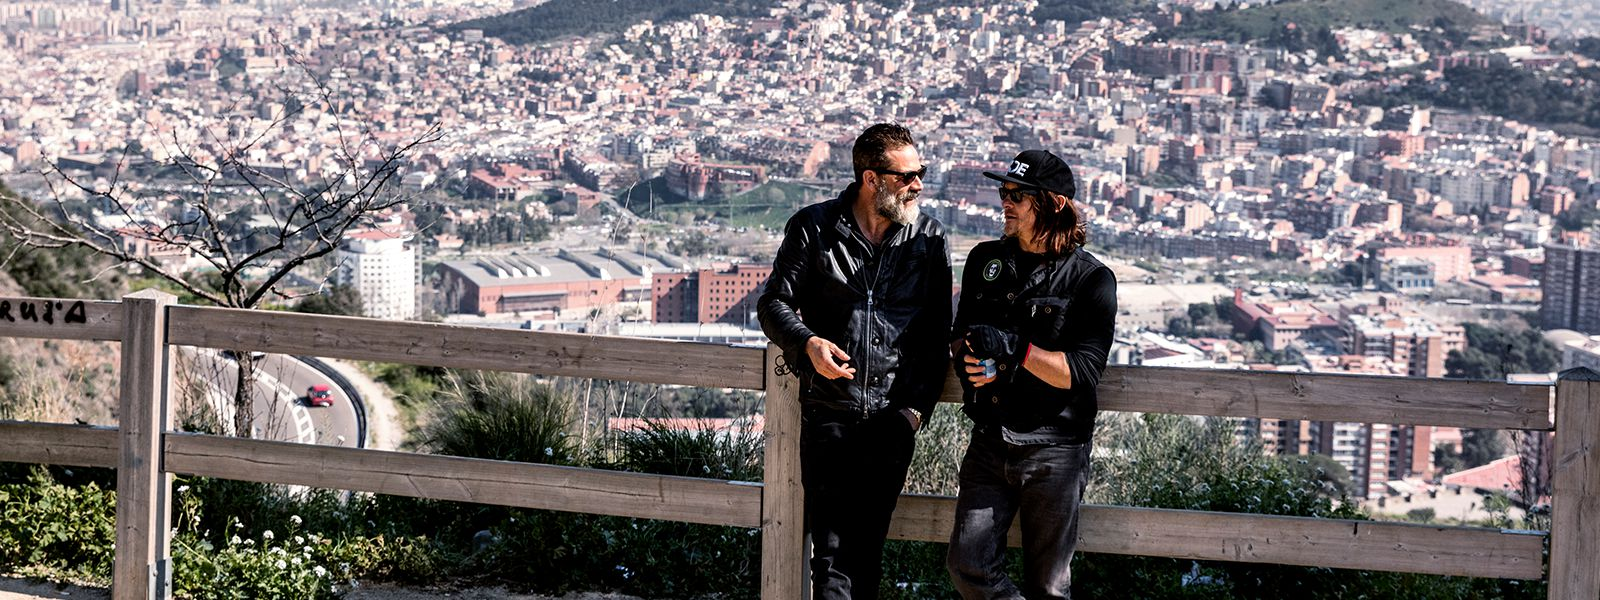 ride-201-post-jeffrey-dean-morgan-norman-reedus-800×600